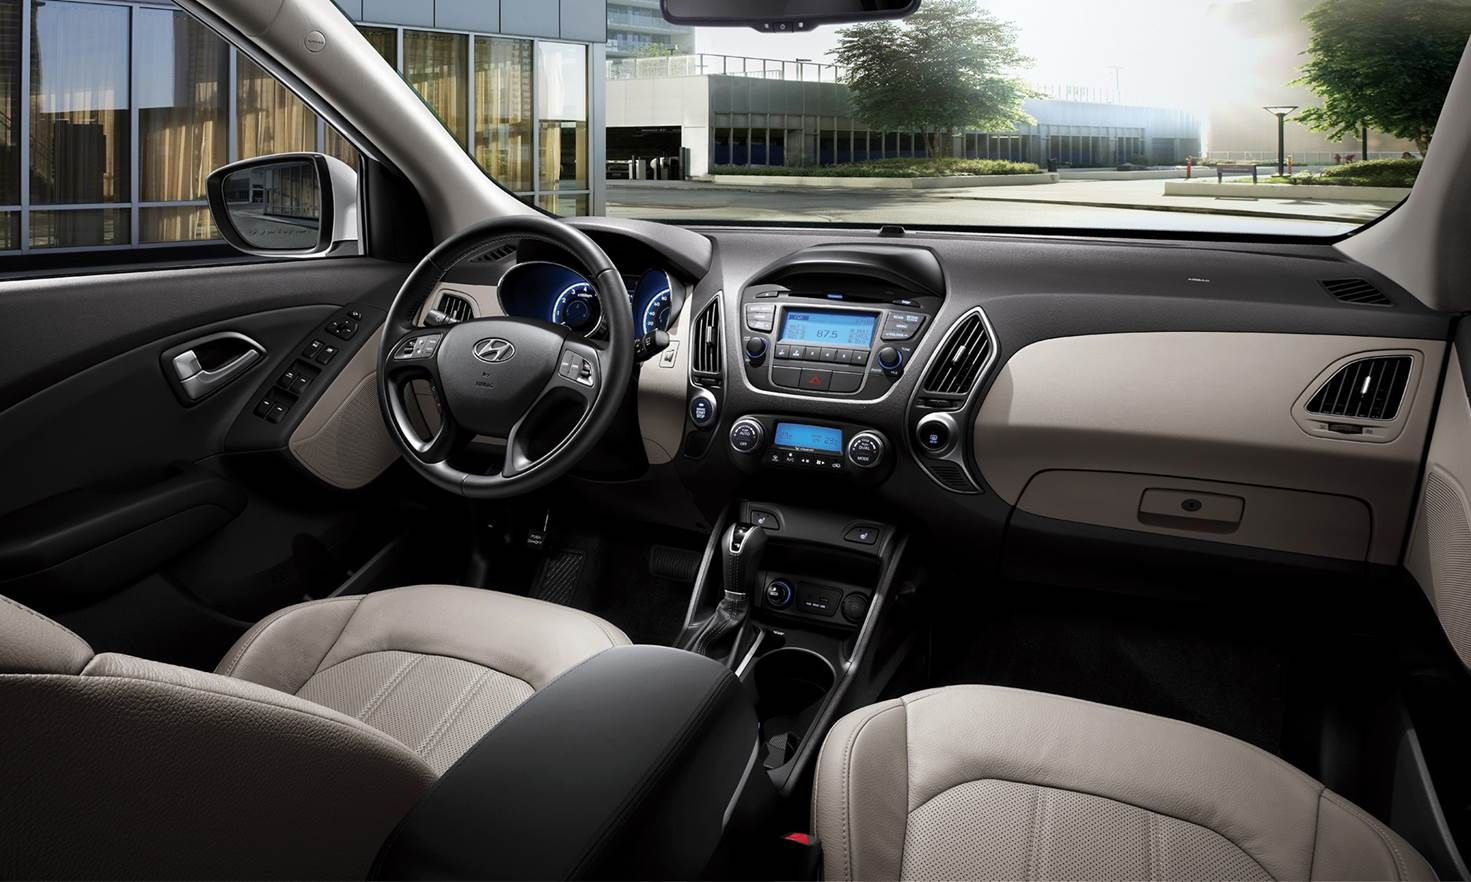 2015 Hyundai Tucson Interior Decor With Flair Reflects Your